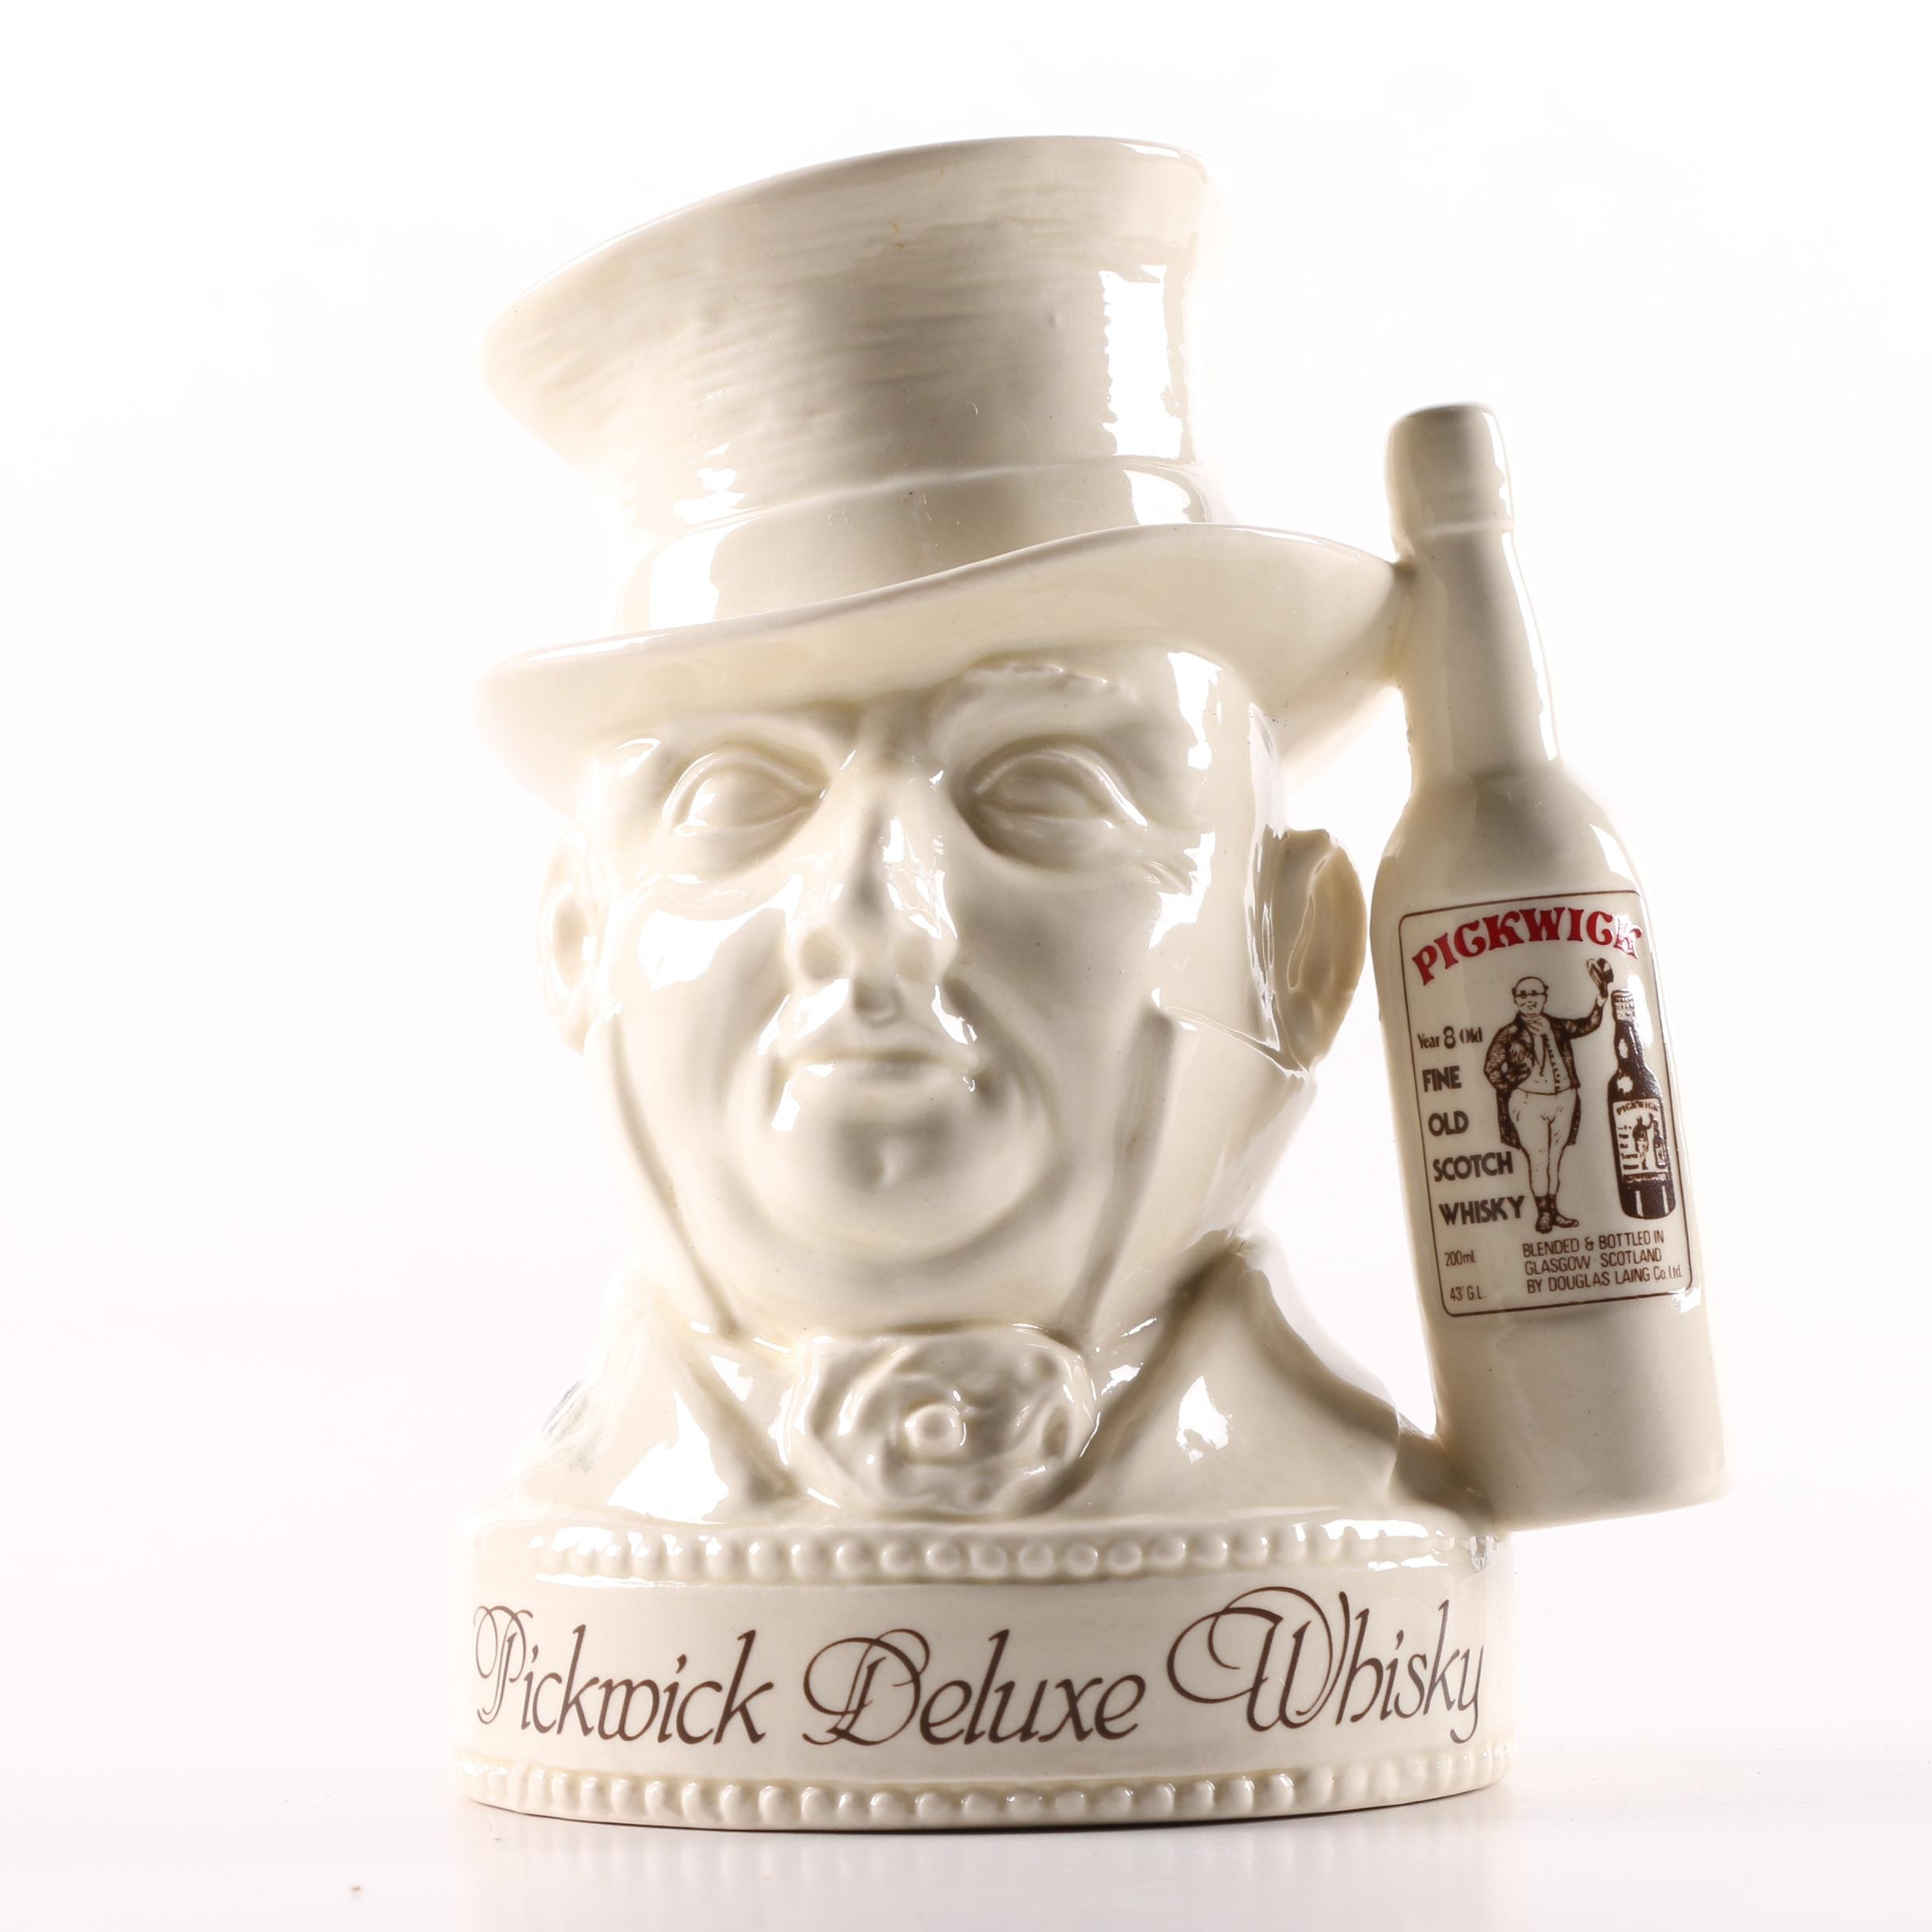 Royal Doulton Pickwick Deluxe Whisky Promotion